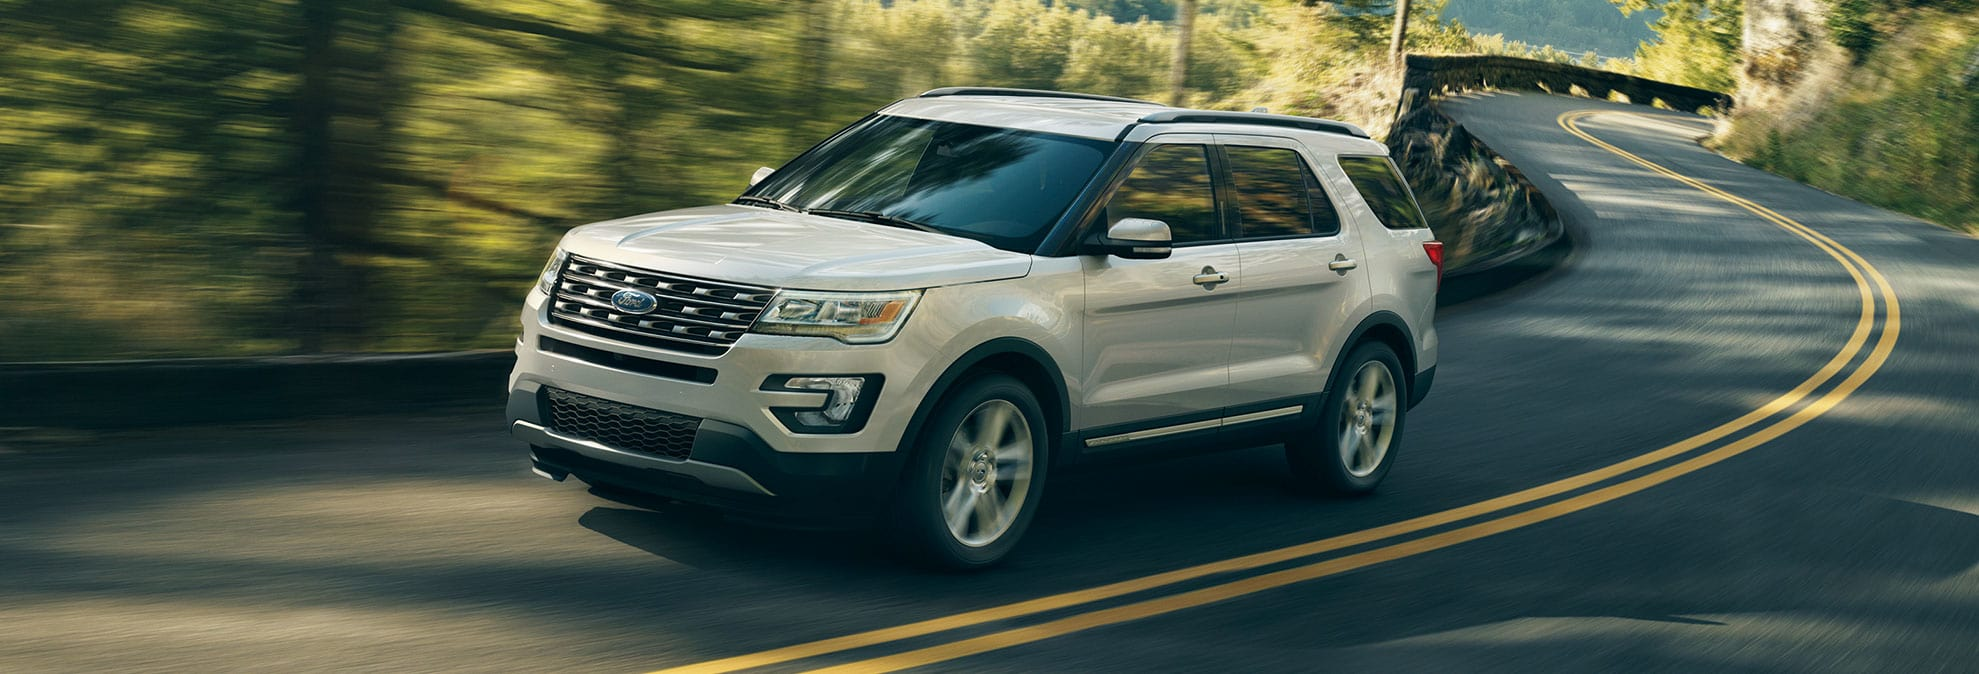 Investigation into ford explorer exhaust leaks consumer reports publicscrutiny Image collections